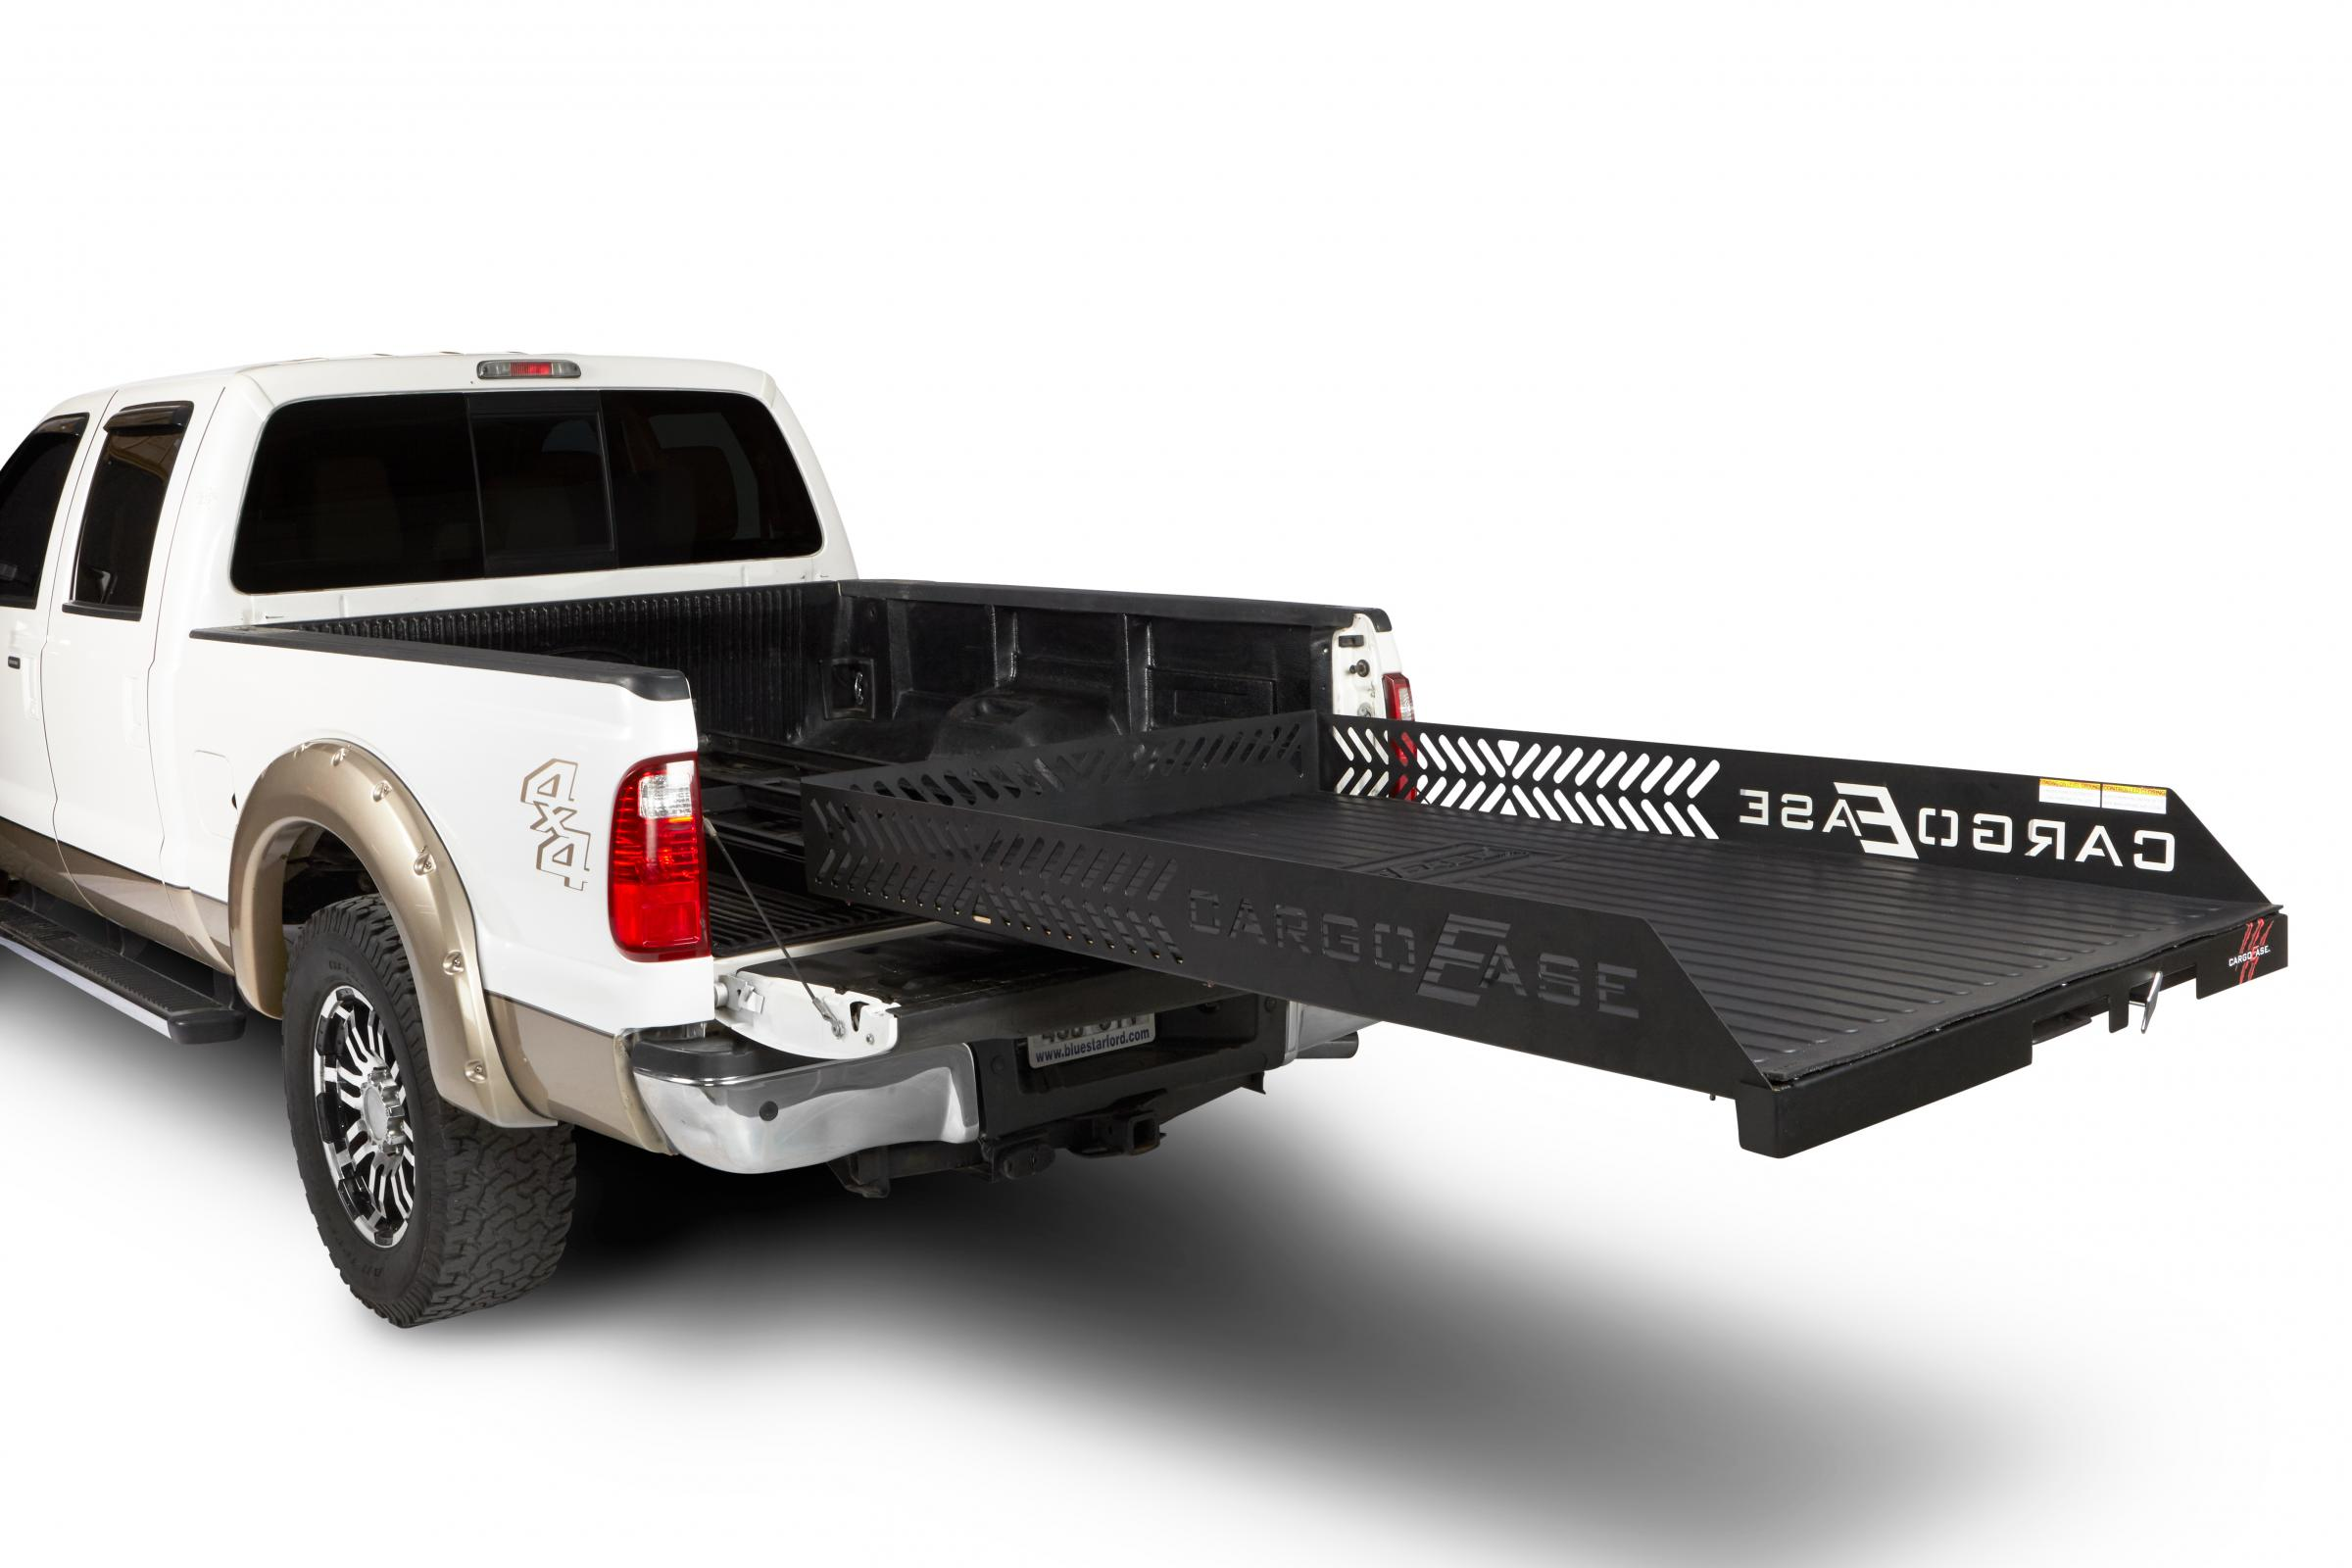 Cargo Ease Full Extension Series Cargo Slide 2000 Lb Capacity 07-Pres Toyota Tundra Crew Max Short Bed